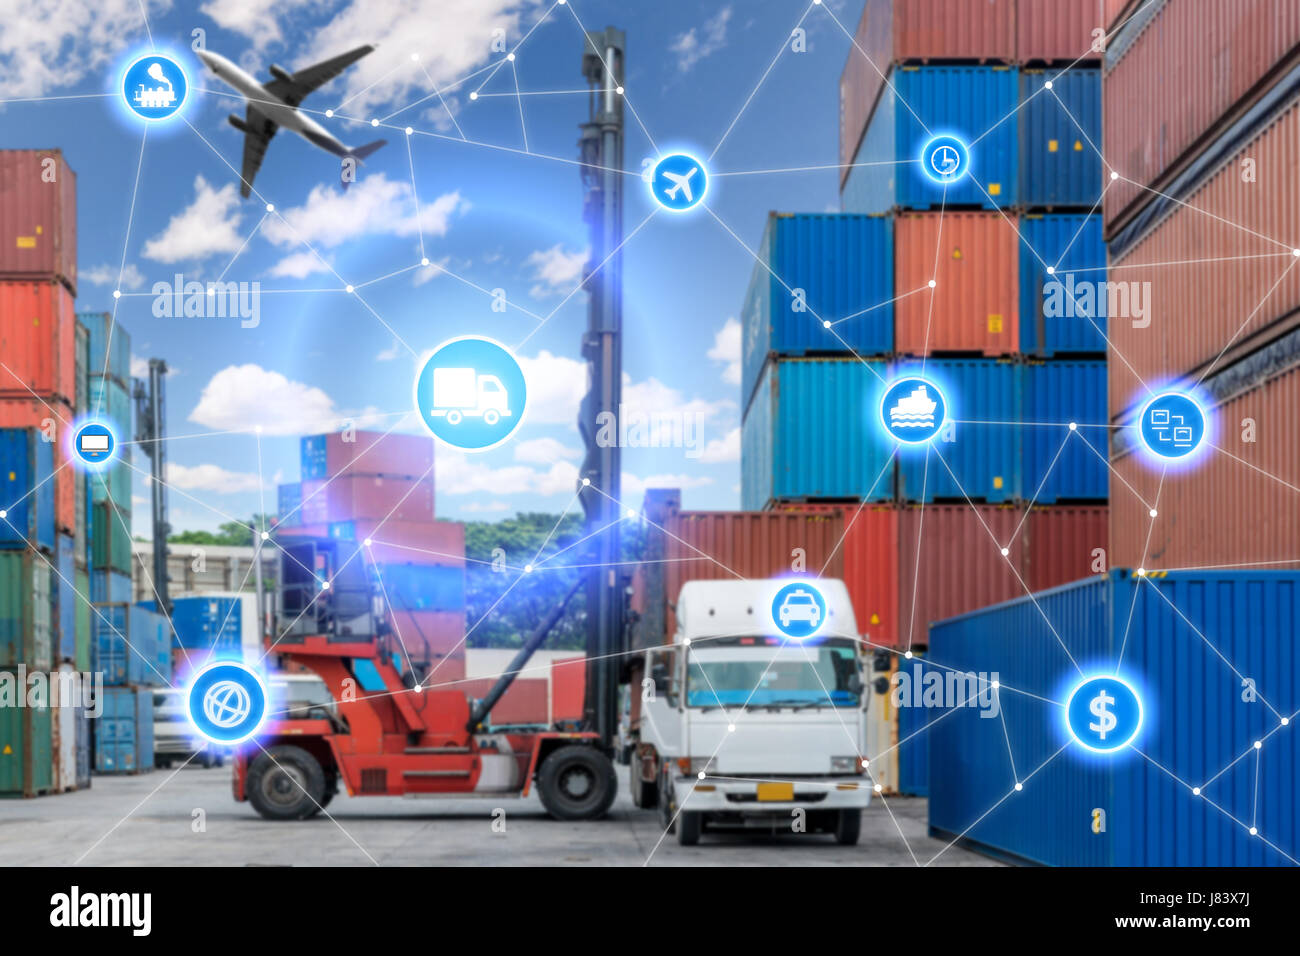 Global business connection technology interface global partner connection of Container Cargo freight truck for logistic - Stock Image